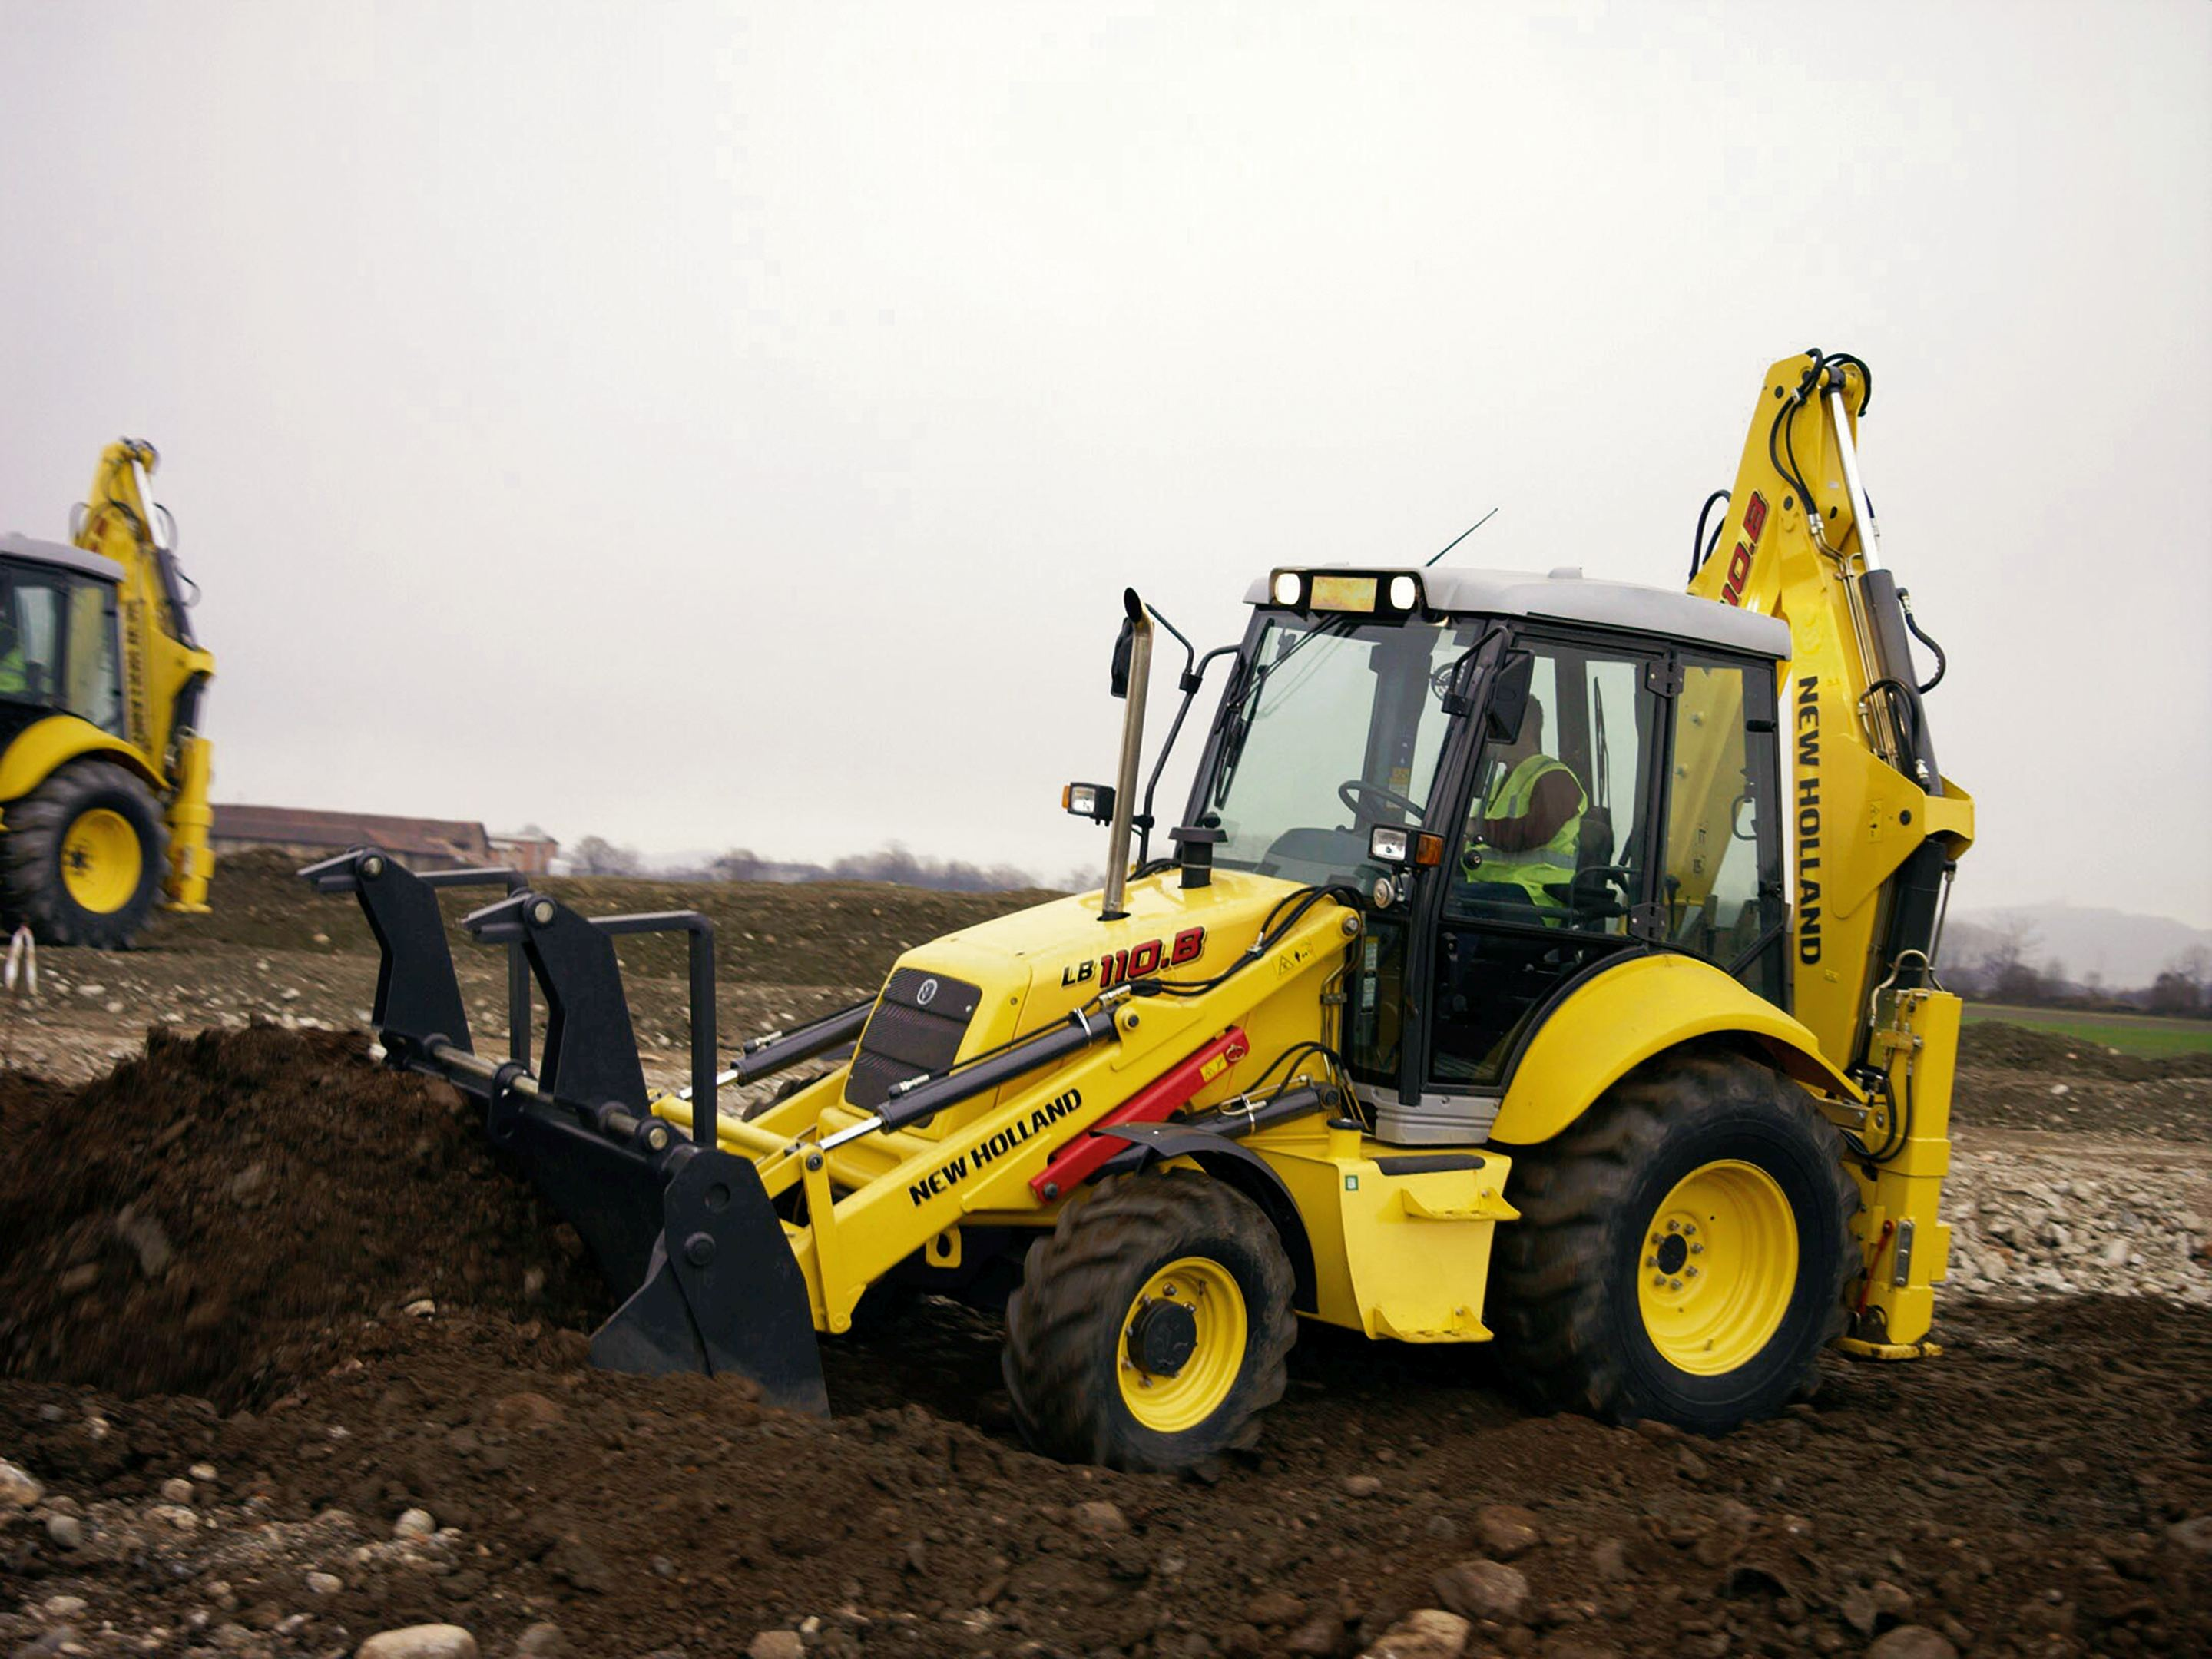 ... line of New Holland Backhoe Parts to service your New Holland Backhoe